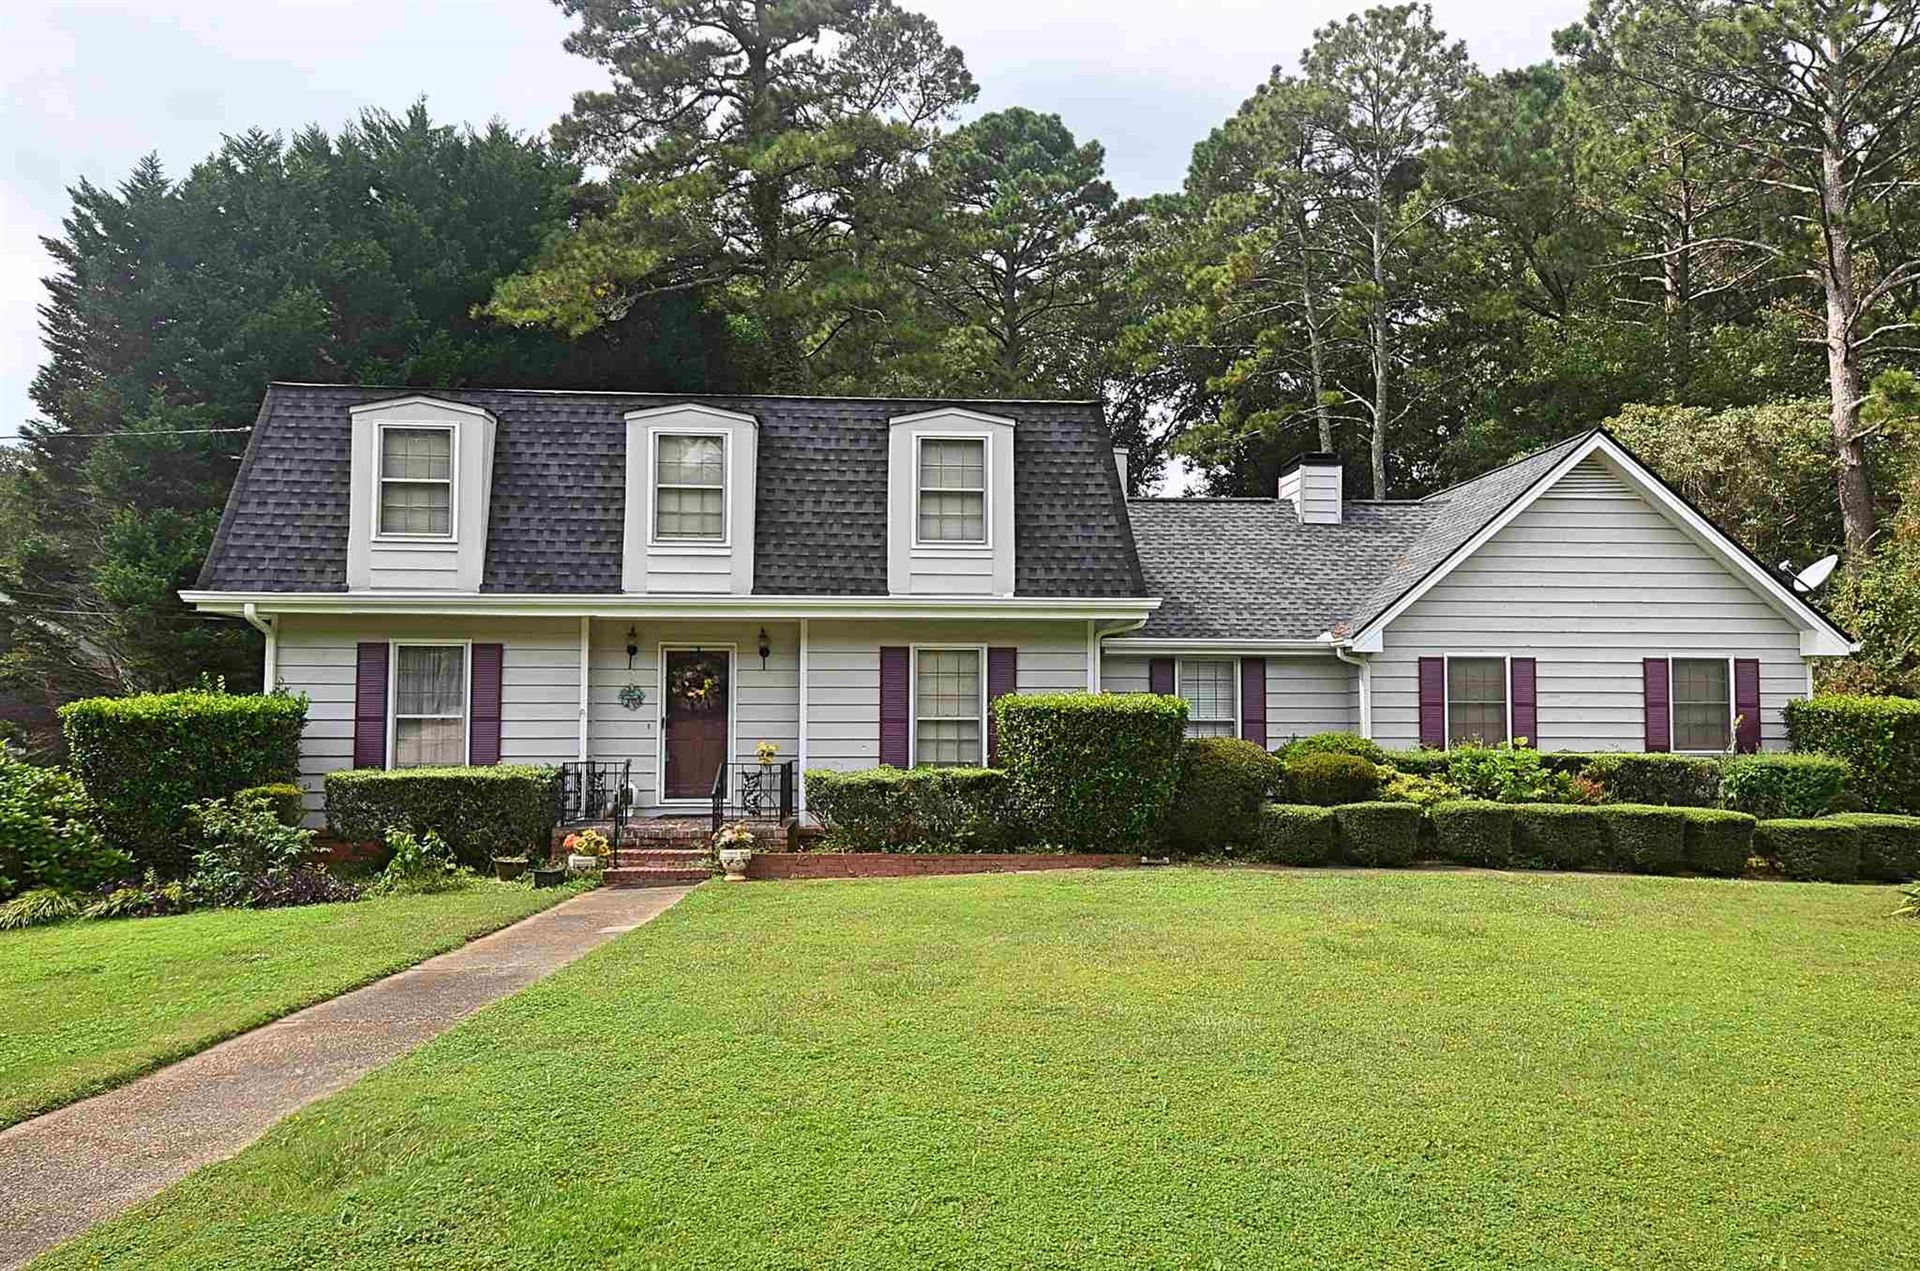 2520 Country Club Dr, Conyers, GA 30013 - MLS#: 8863627